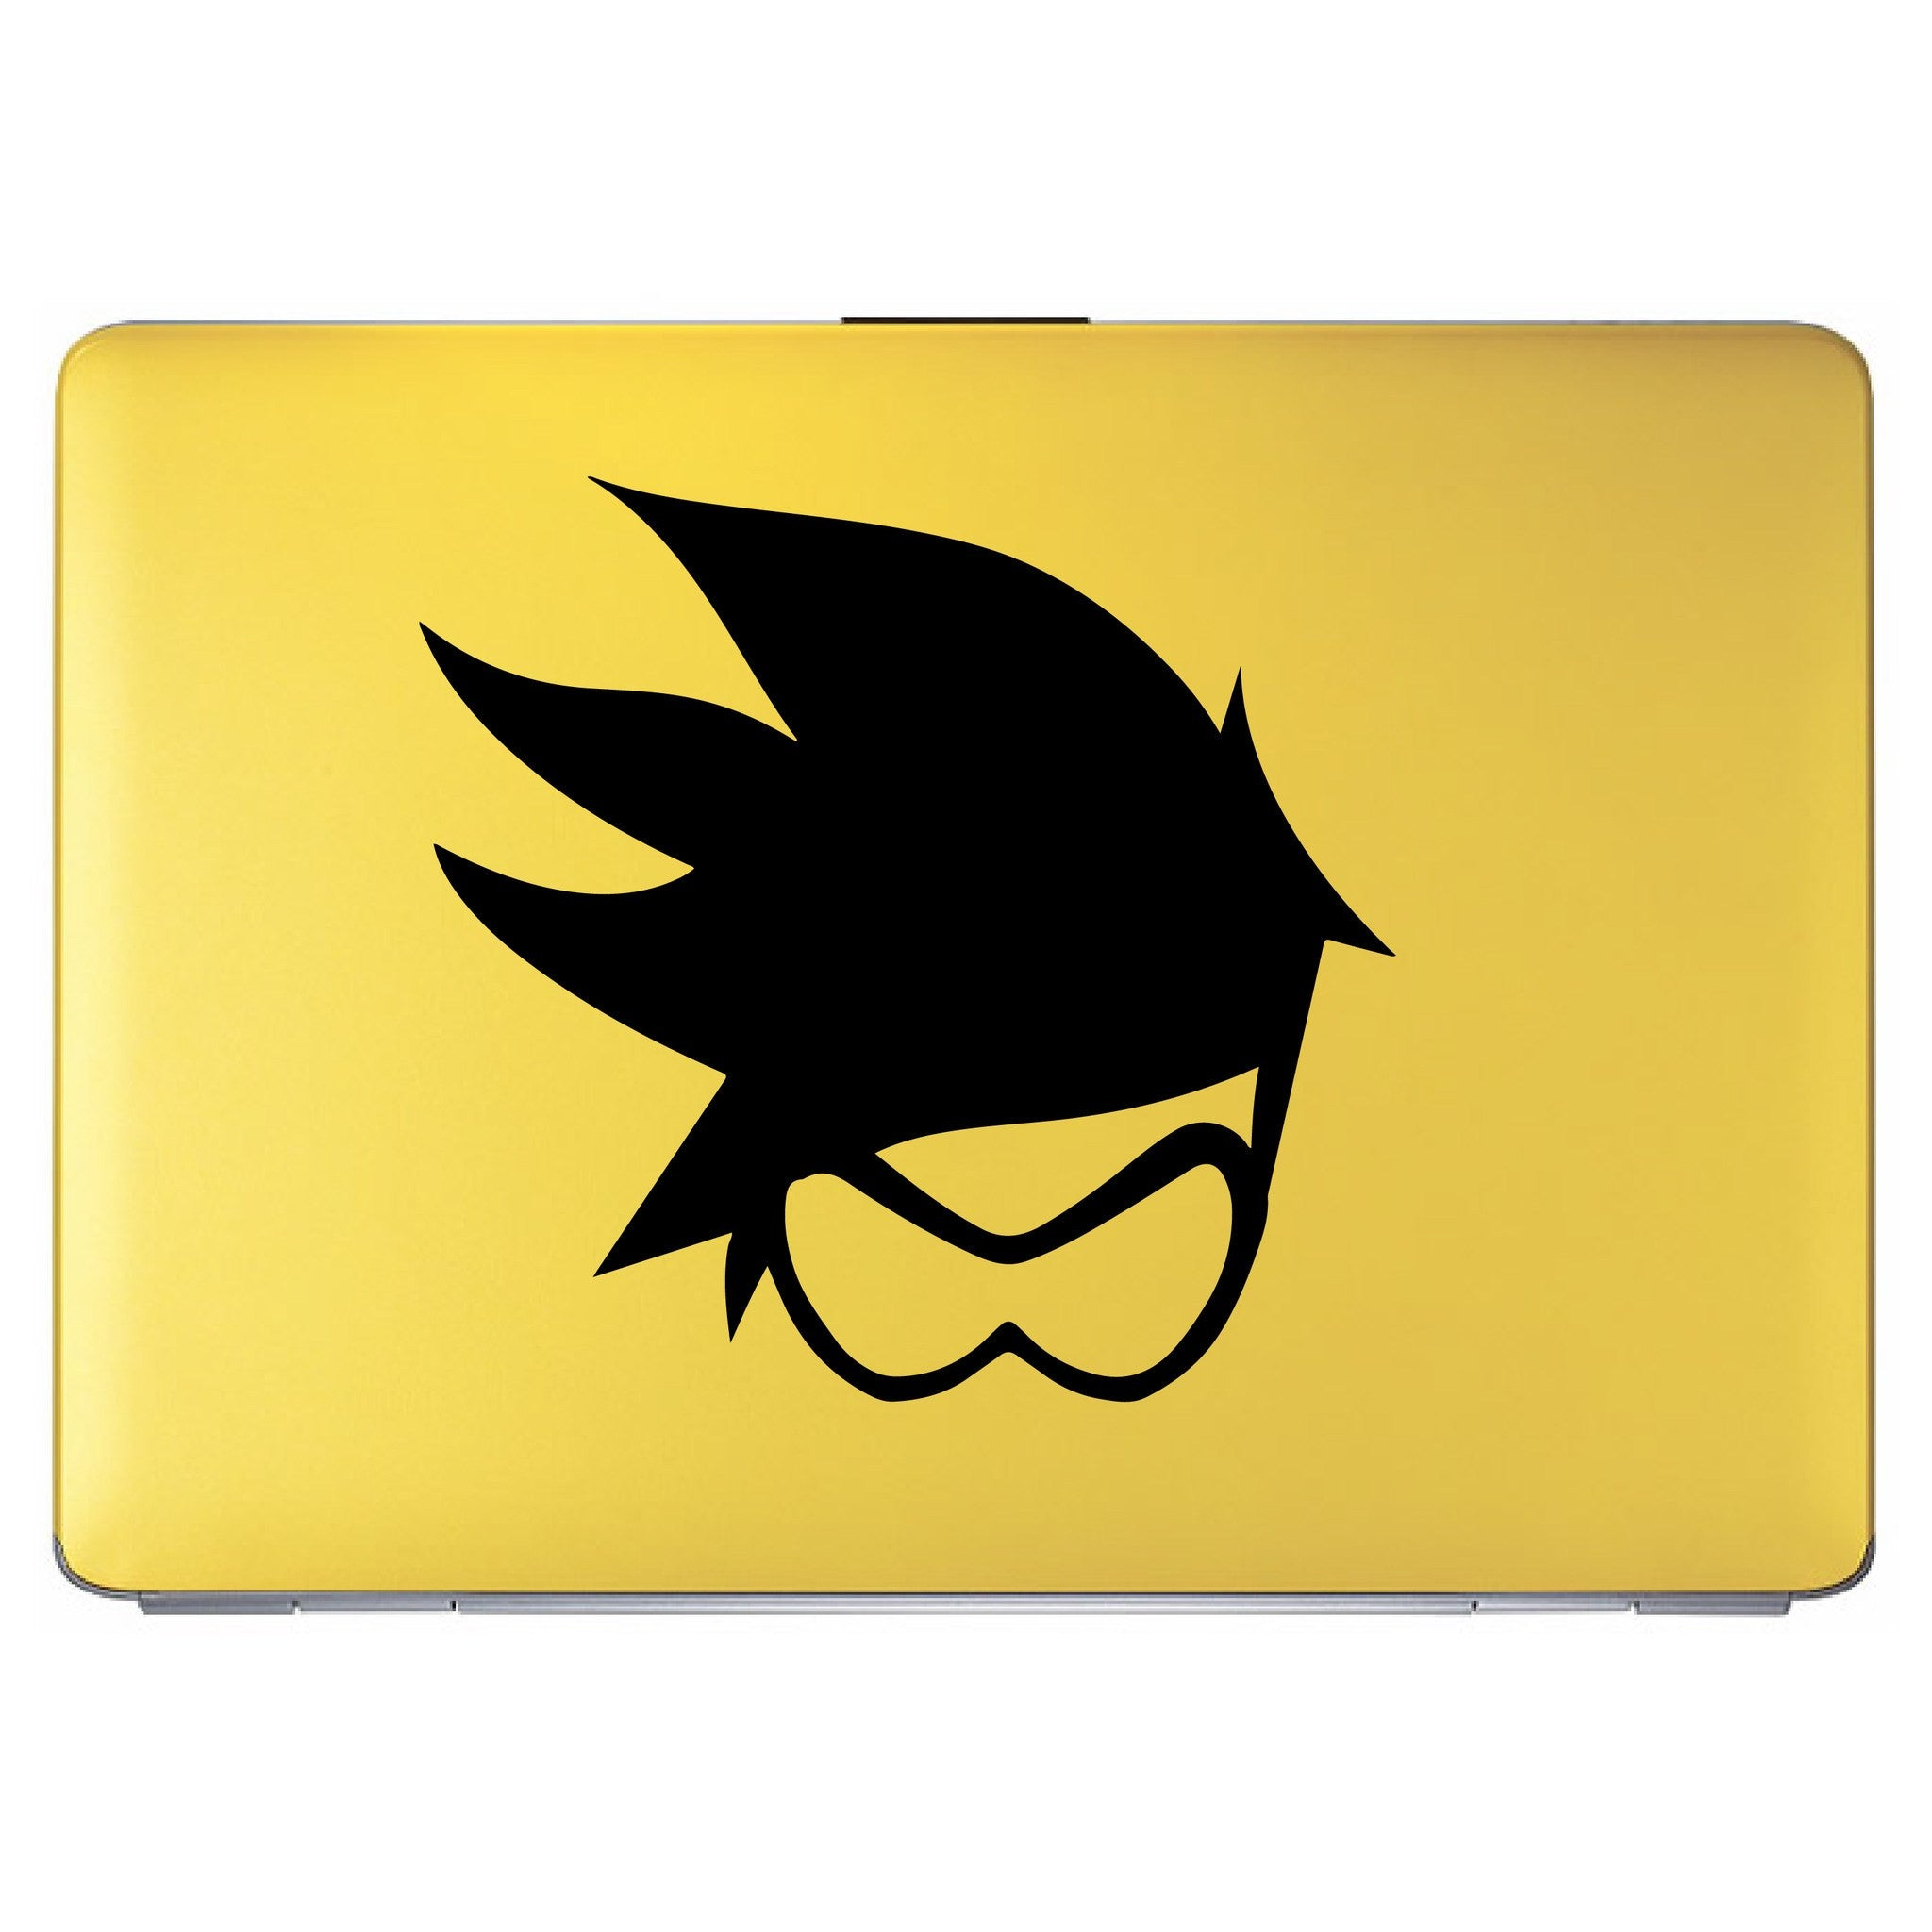 Tracer Head Overwatch Computer Game Bumper/Phone/Laptop Sticker (AS11131) - Apex Stickers